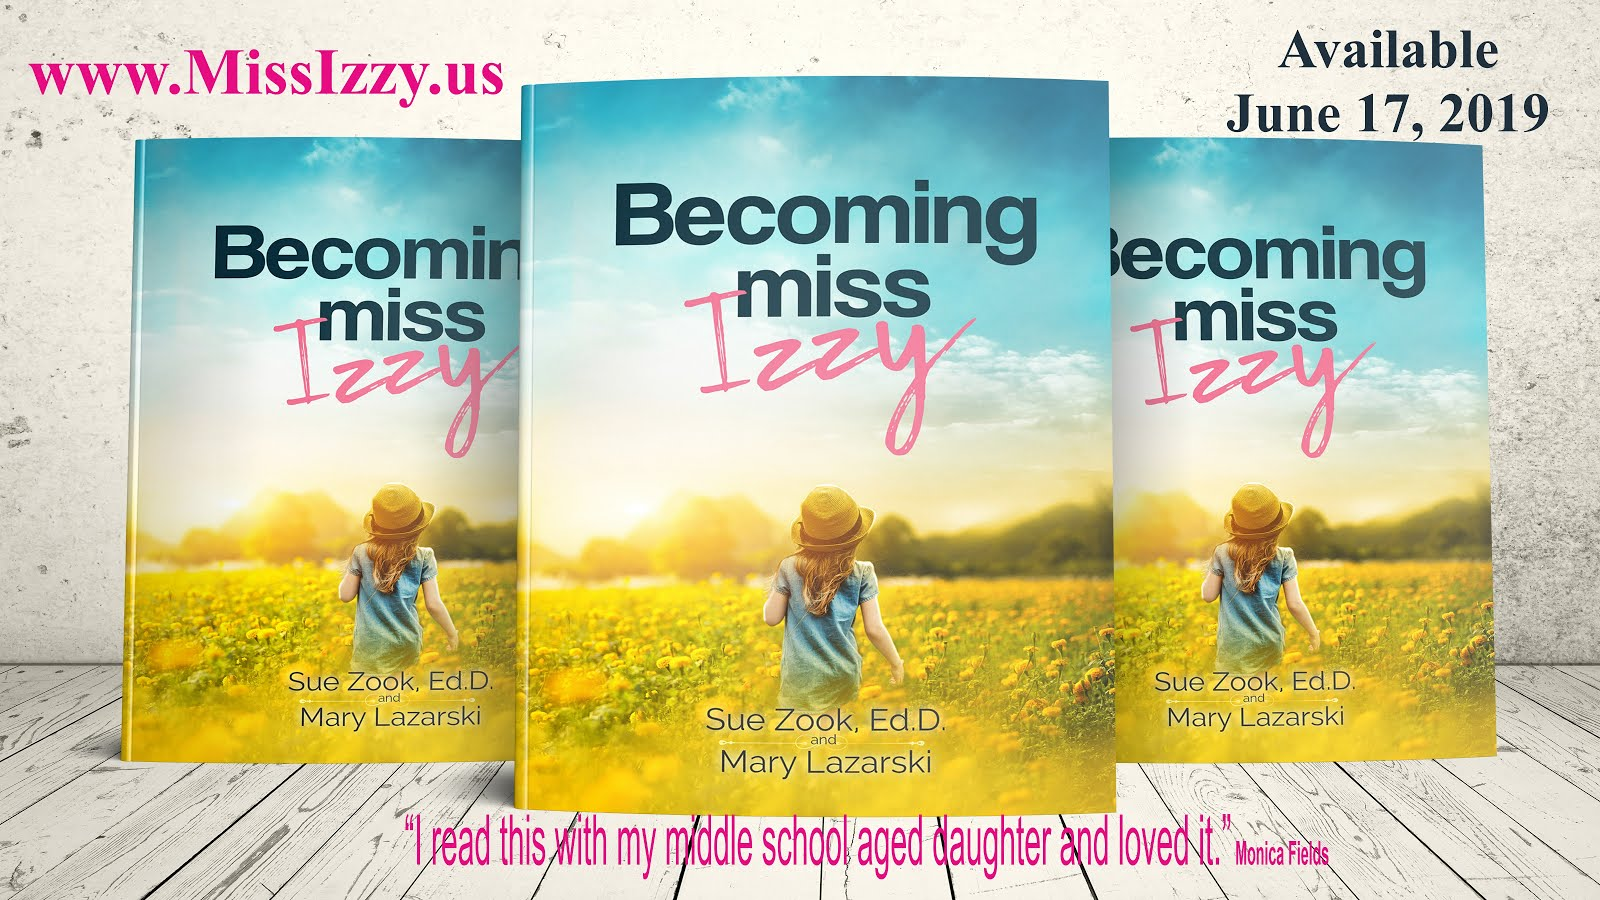 BECOMING MISS IZZY by Sue Zook and Mary Lazarski